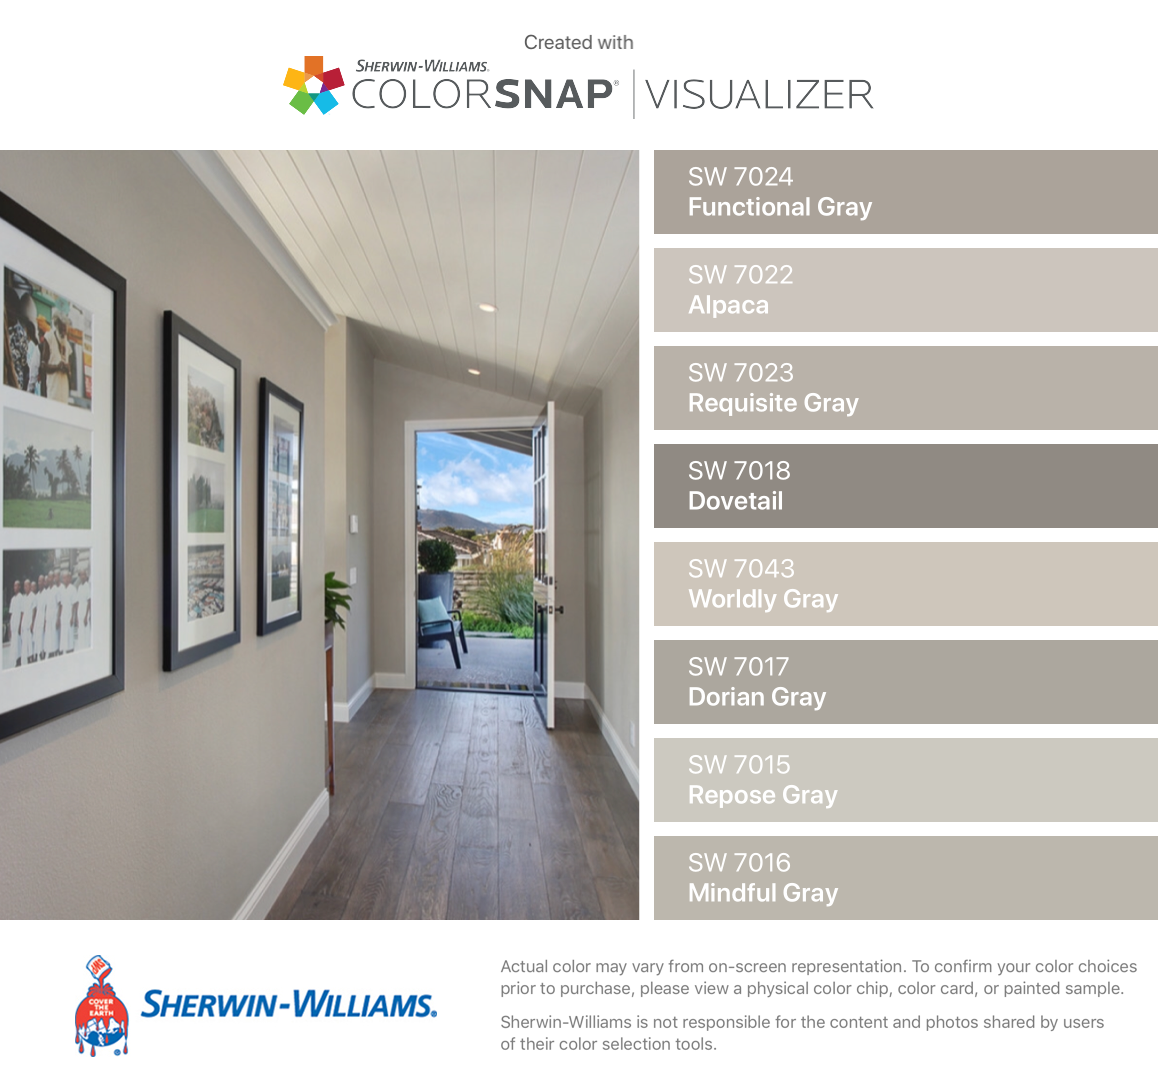 I Found These Colors With Colorsnap Visualizer For Iphone By Sherwin Williams Functional Gray Farmhouse Paint Colors Room Paint Colors Paint Colors For Home